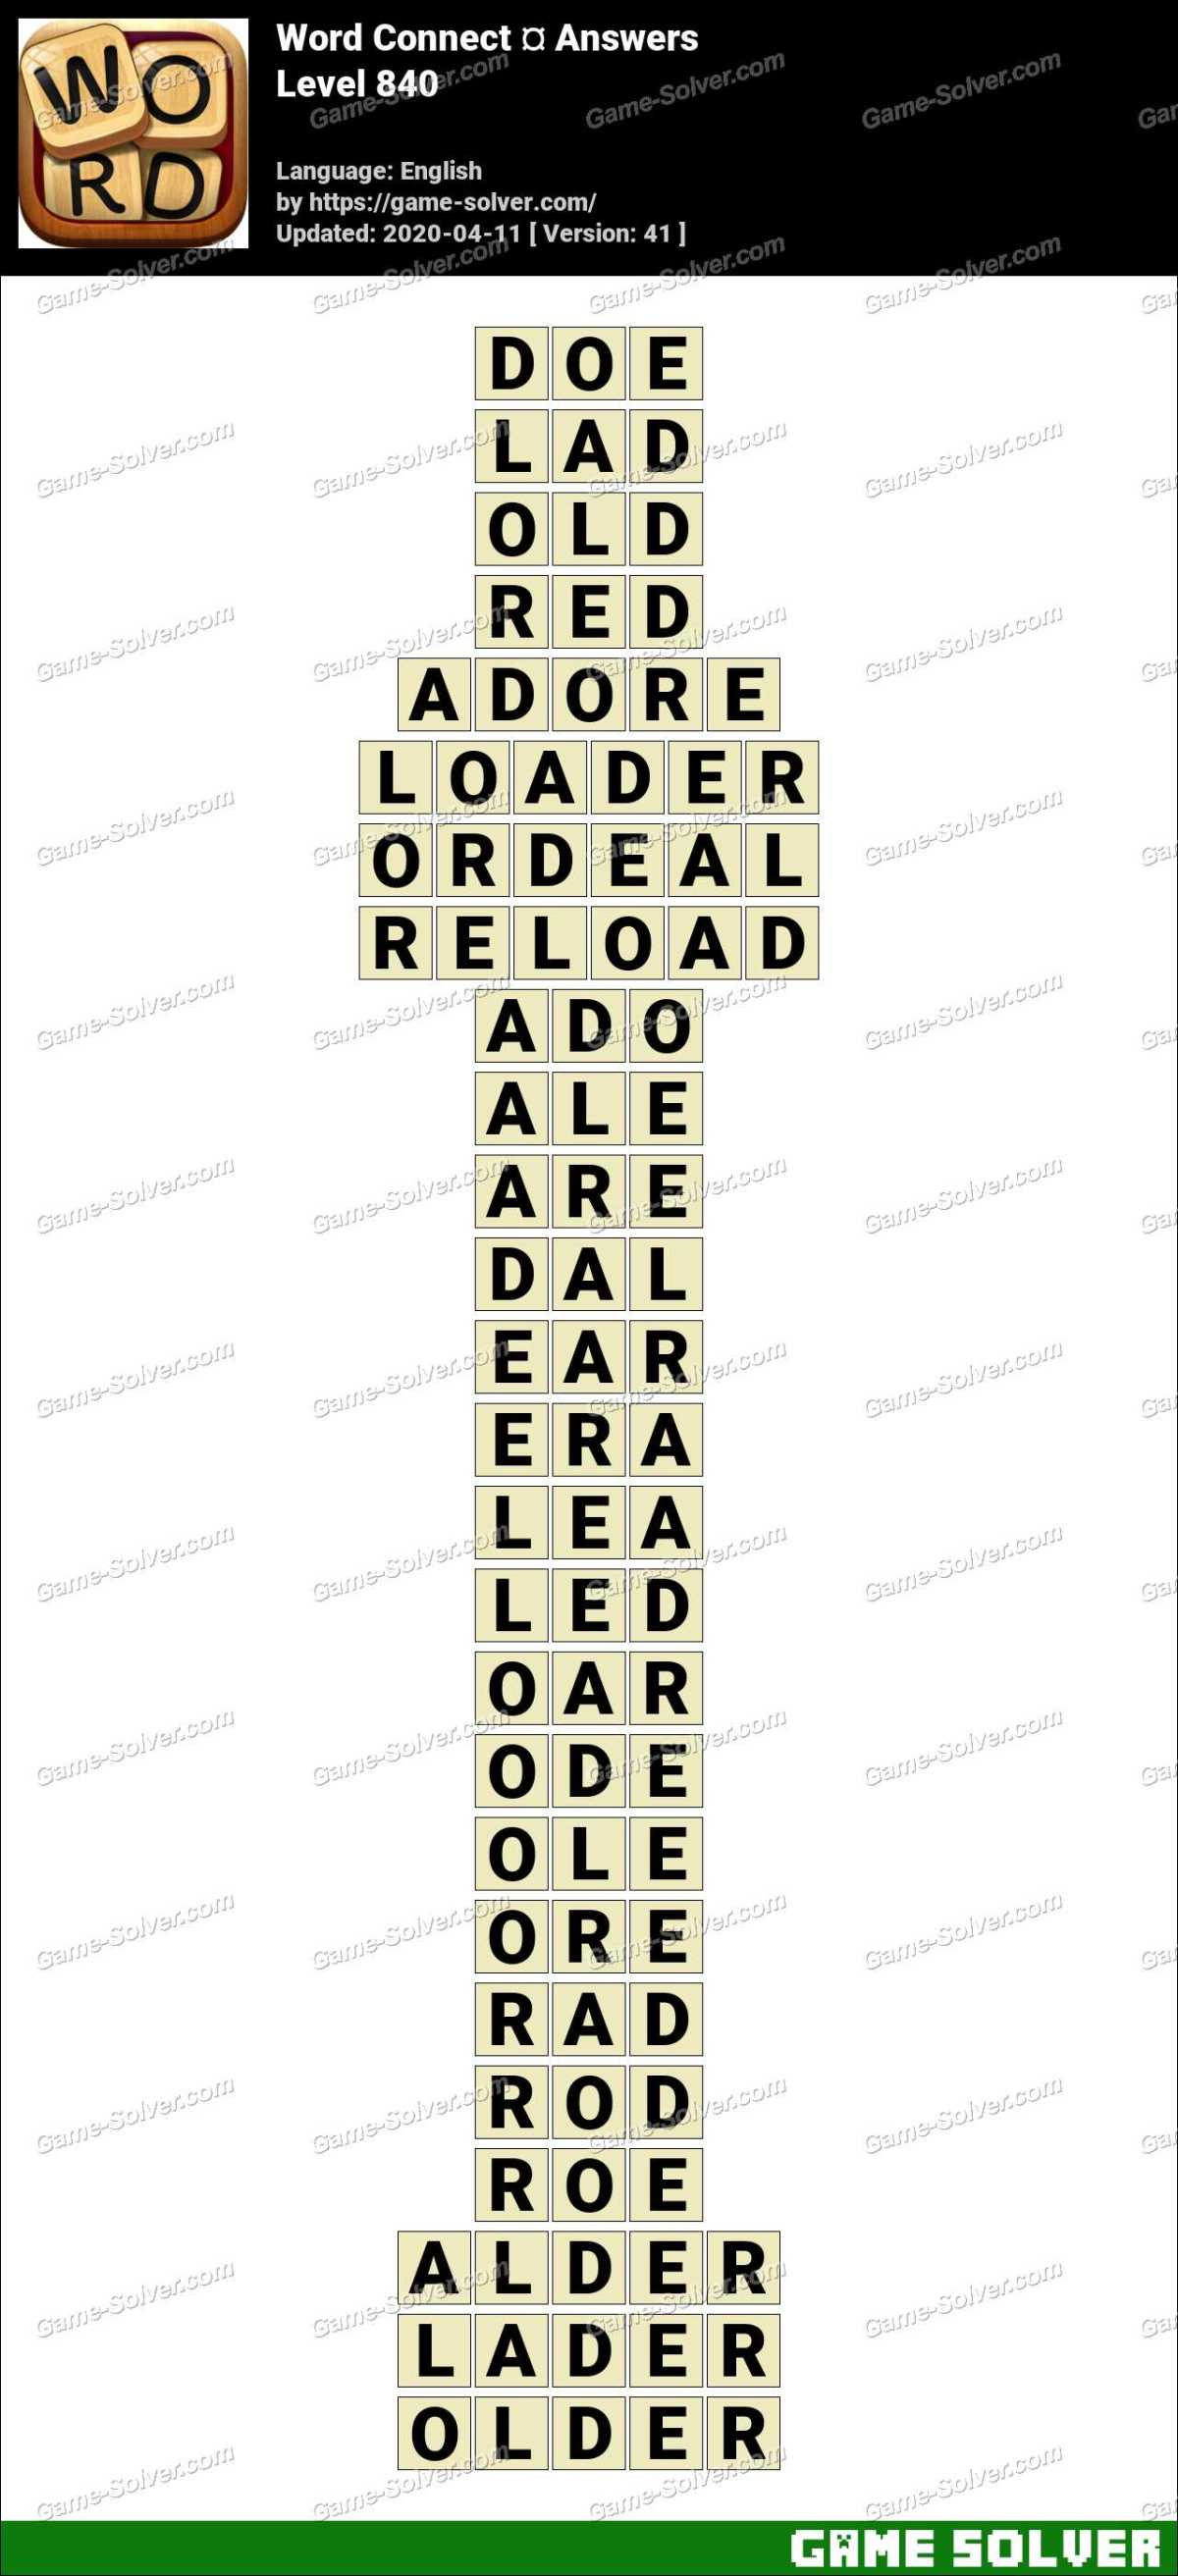 Word Connect Level 840 Answers